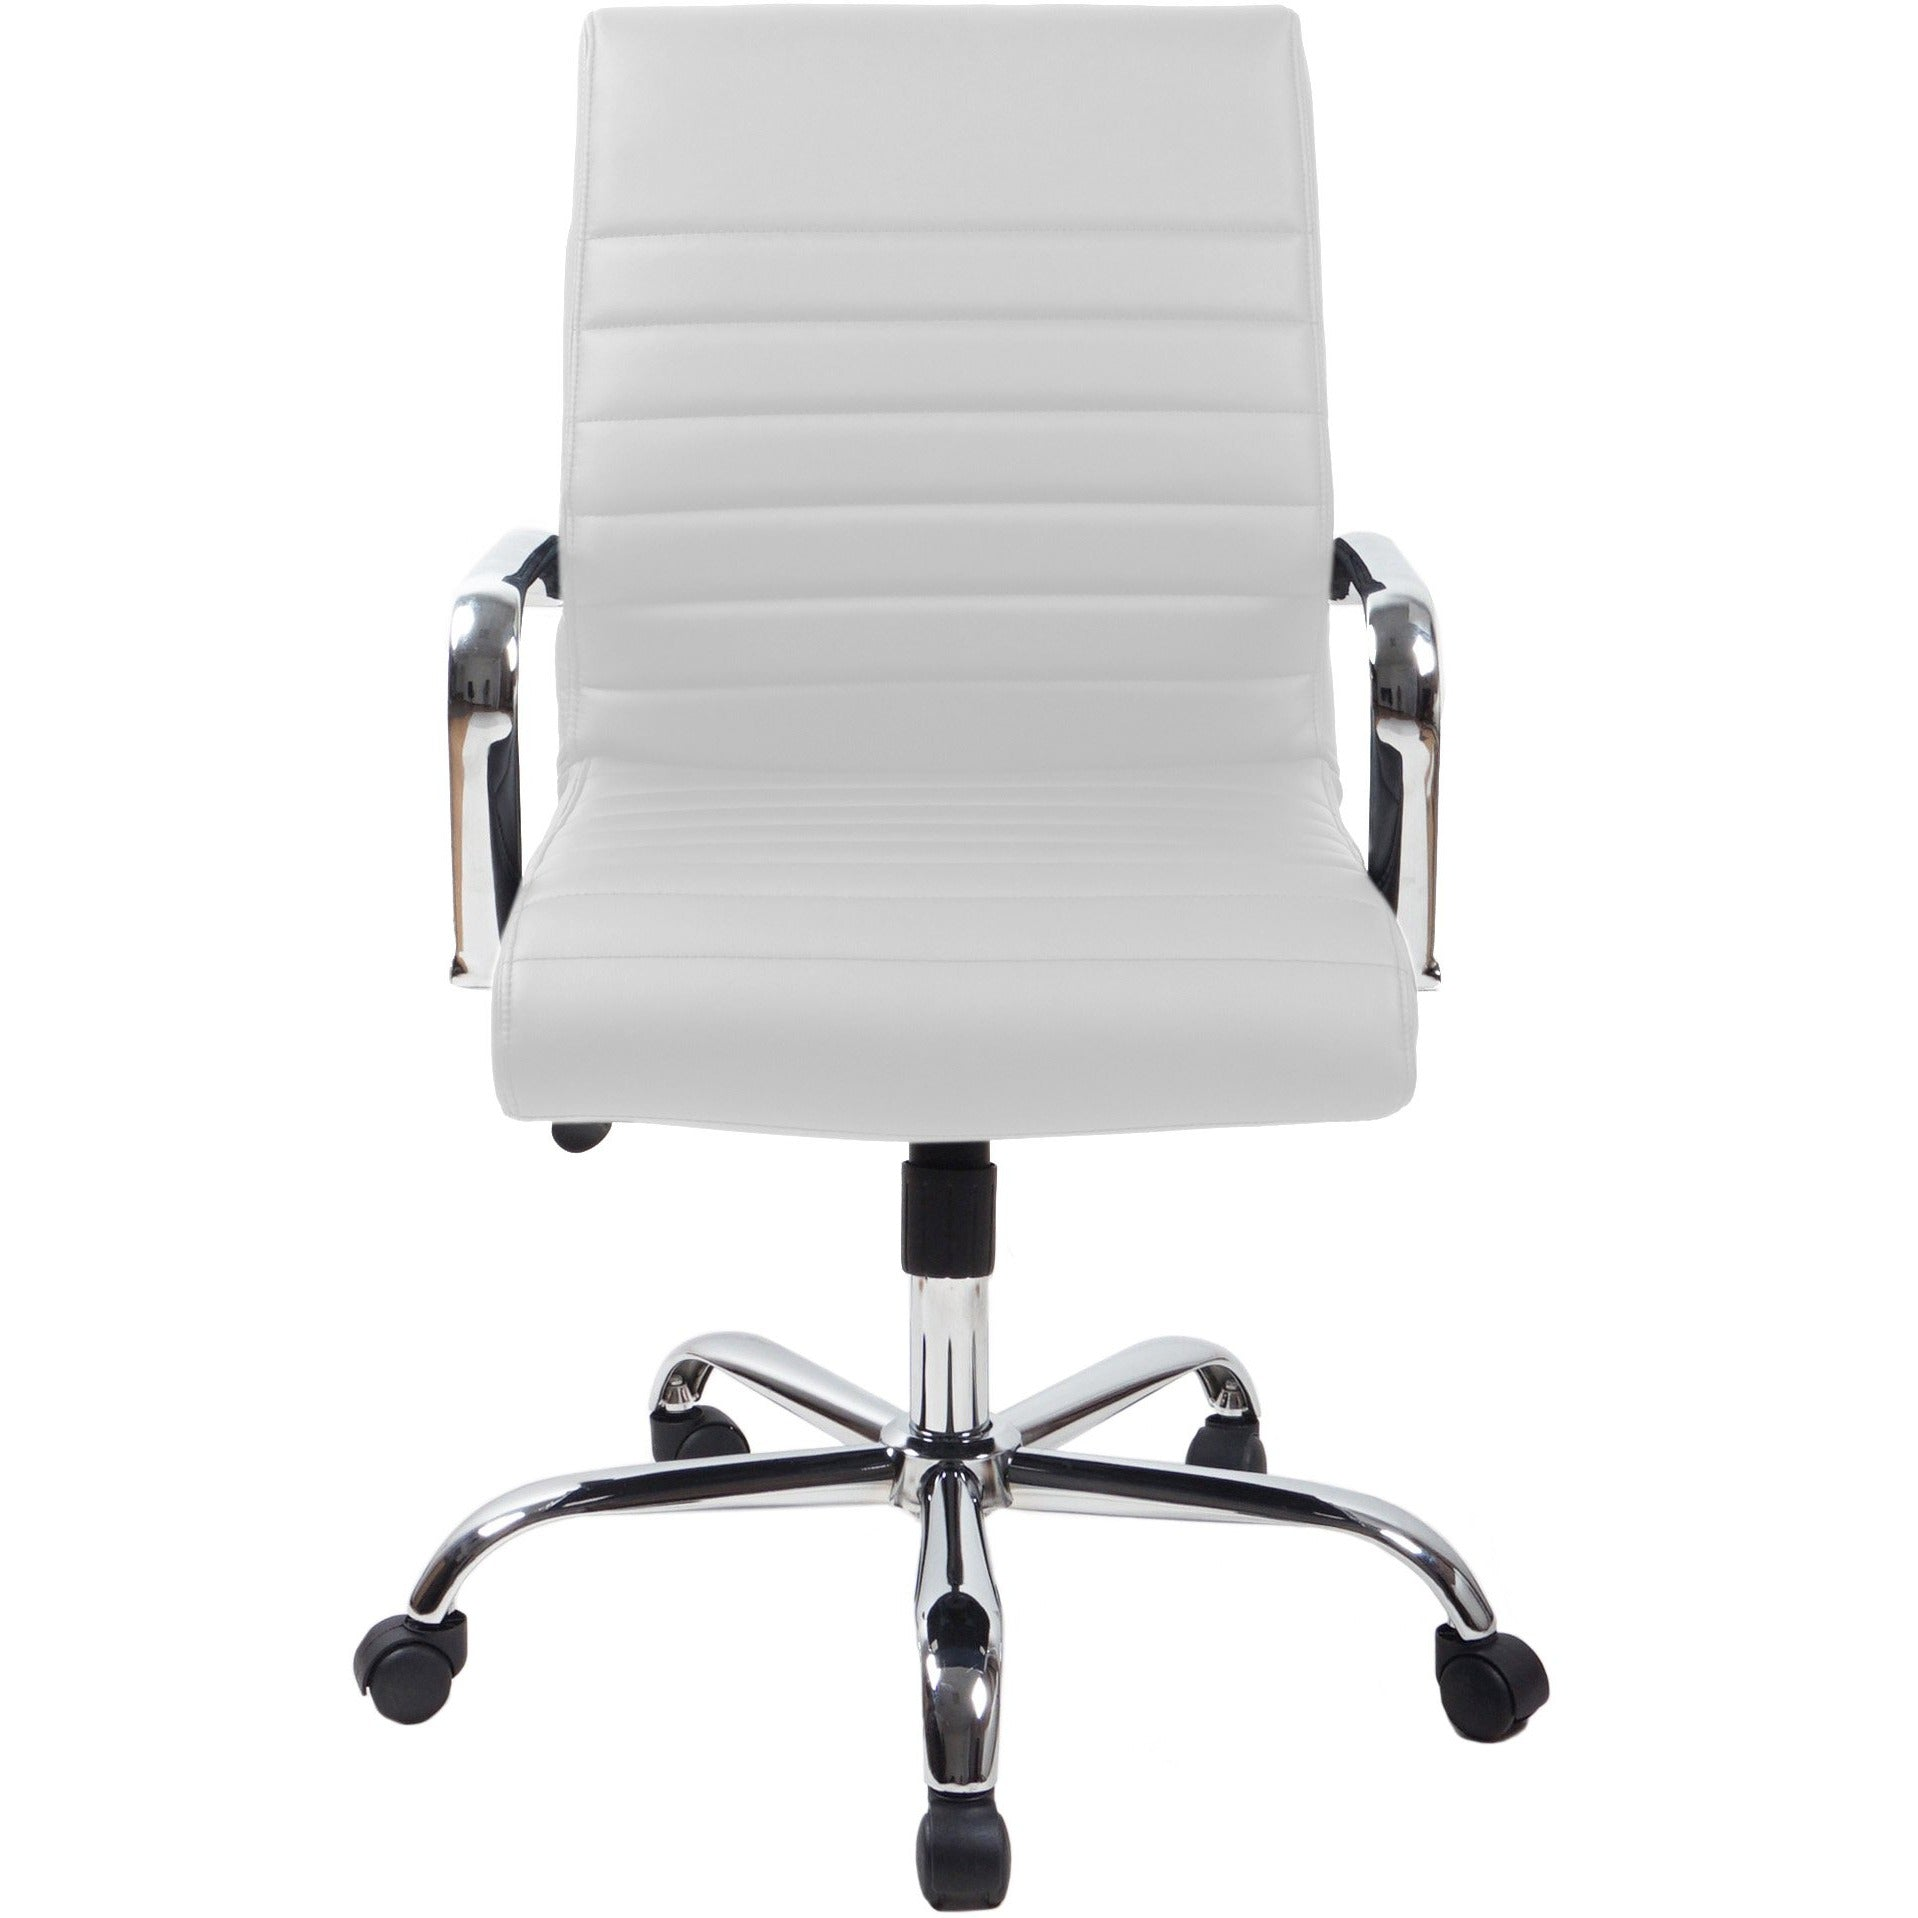 RealBiz II Modern Comfort Series Mid-Back  LeatherPro Chair, Pure White